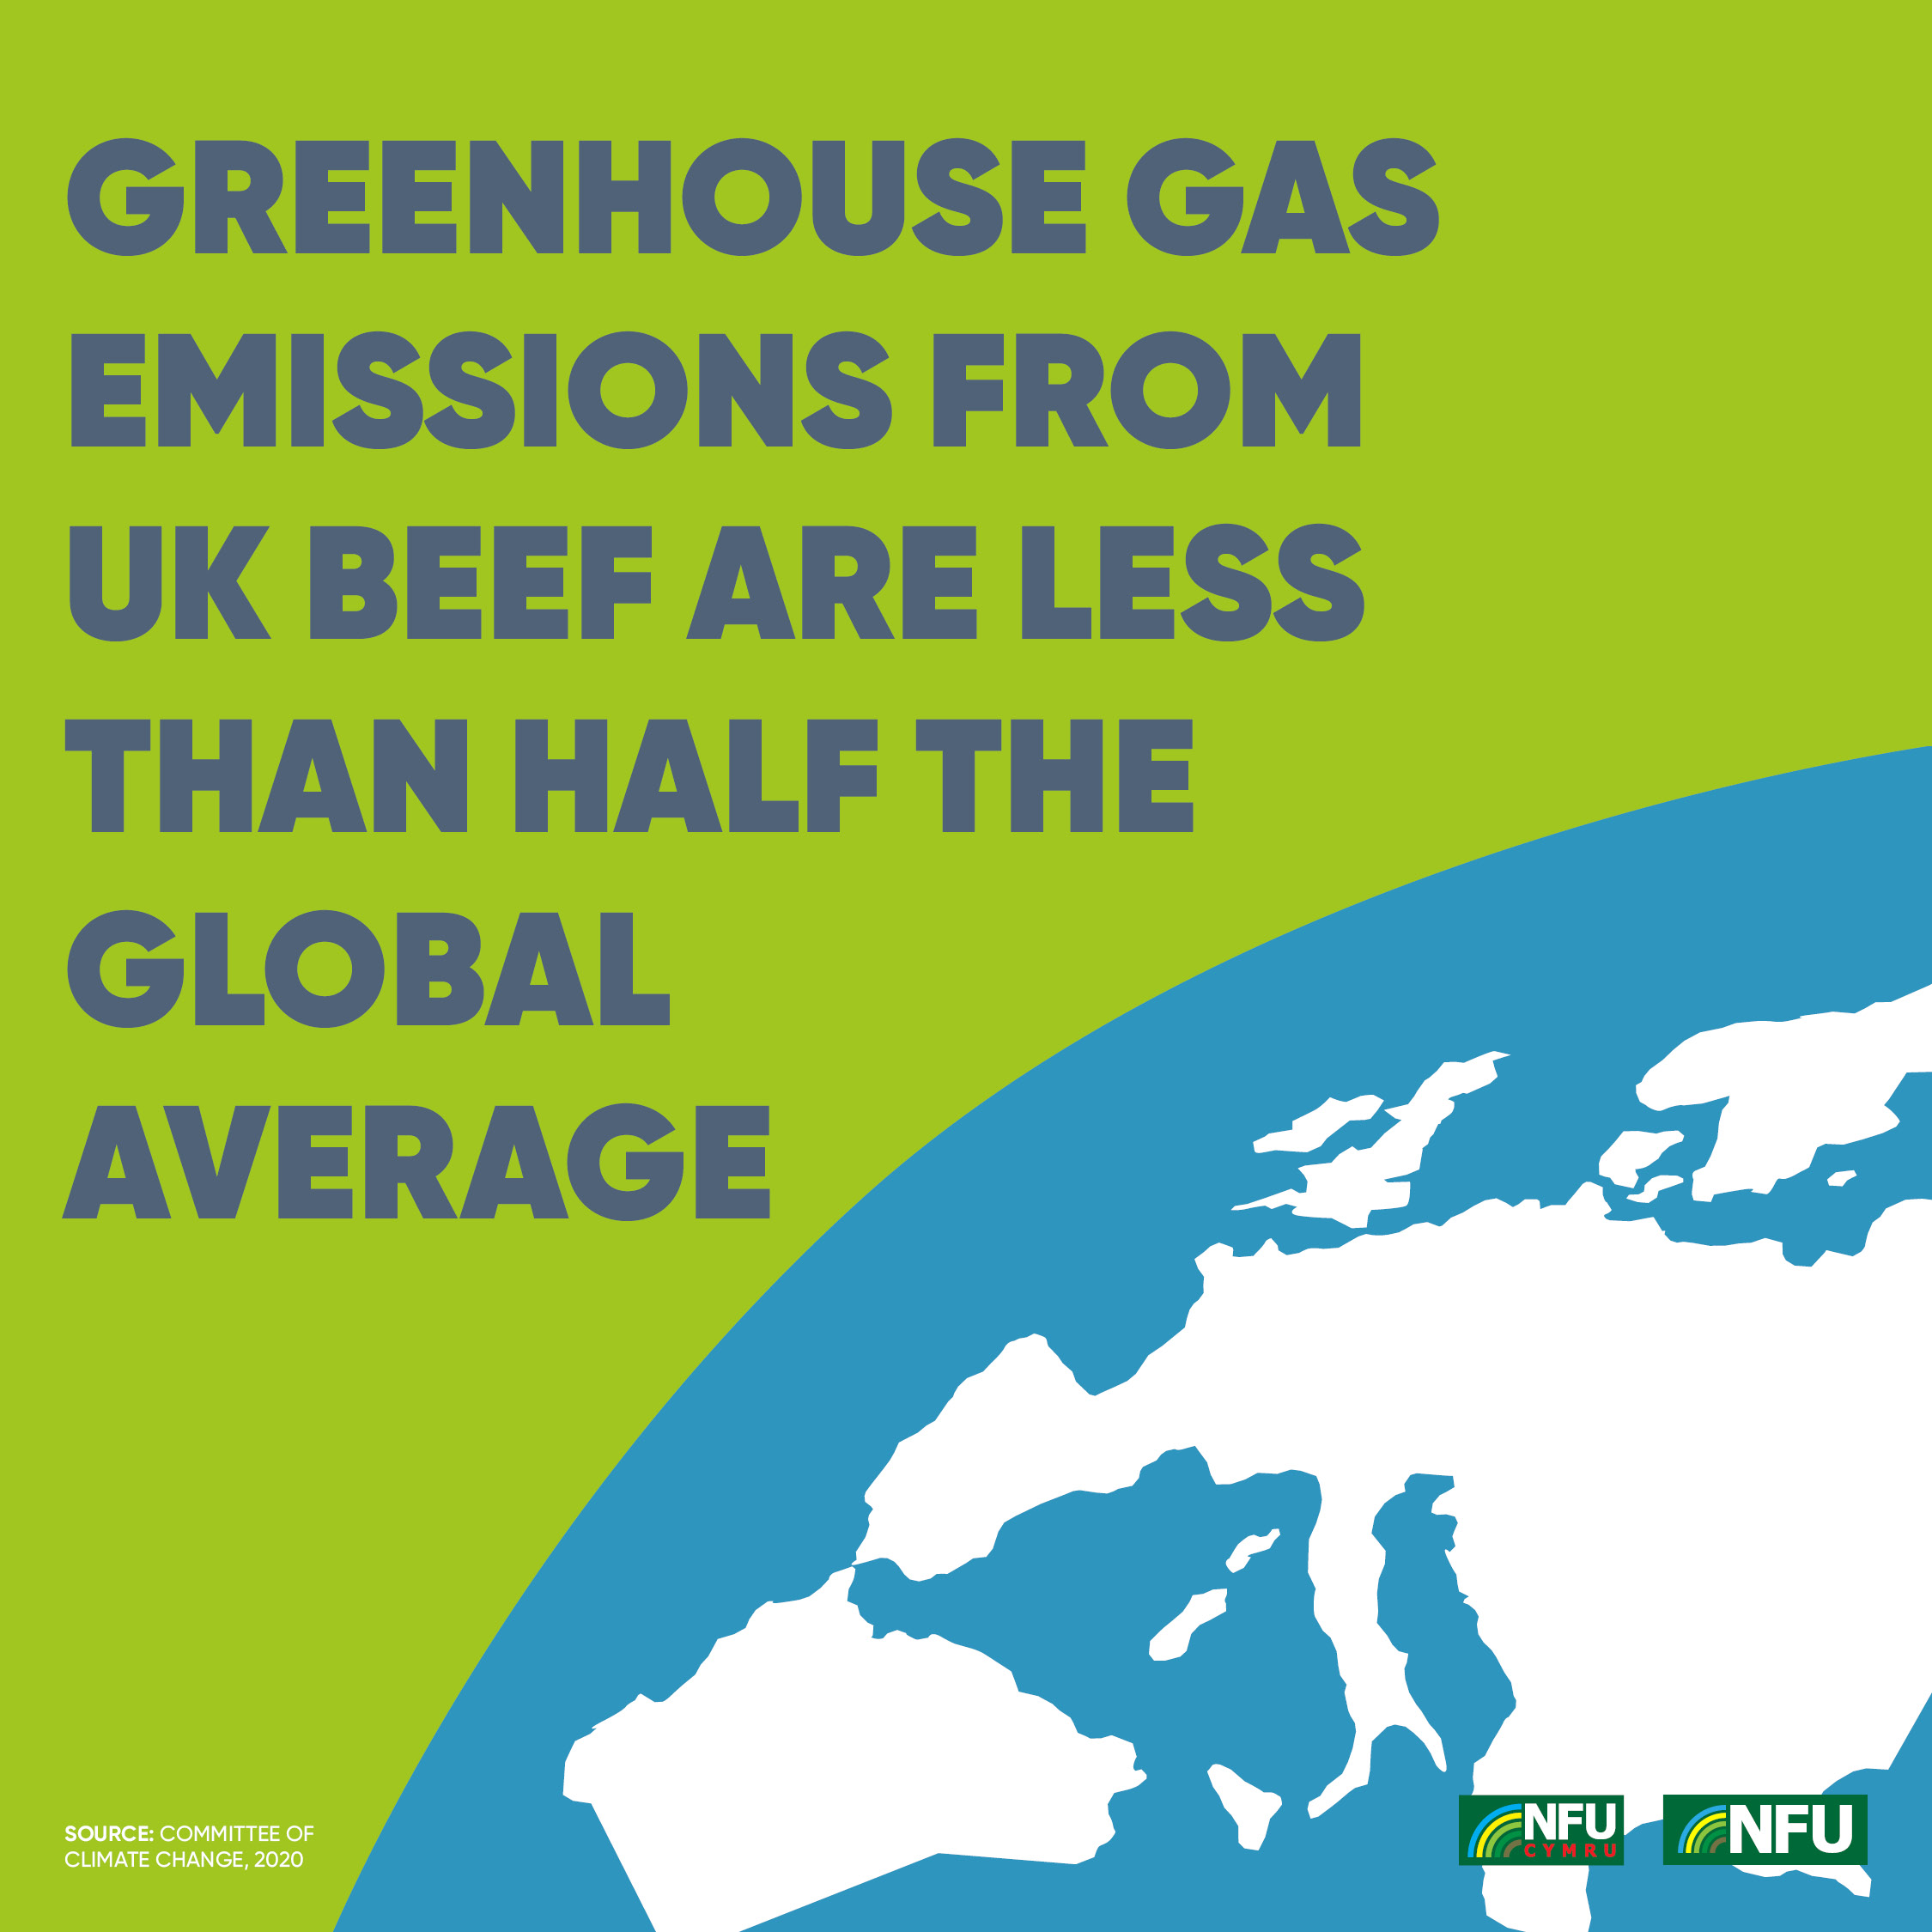 NFU Instagram infographic greenhouse gas emissions beef